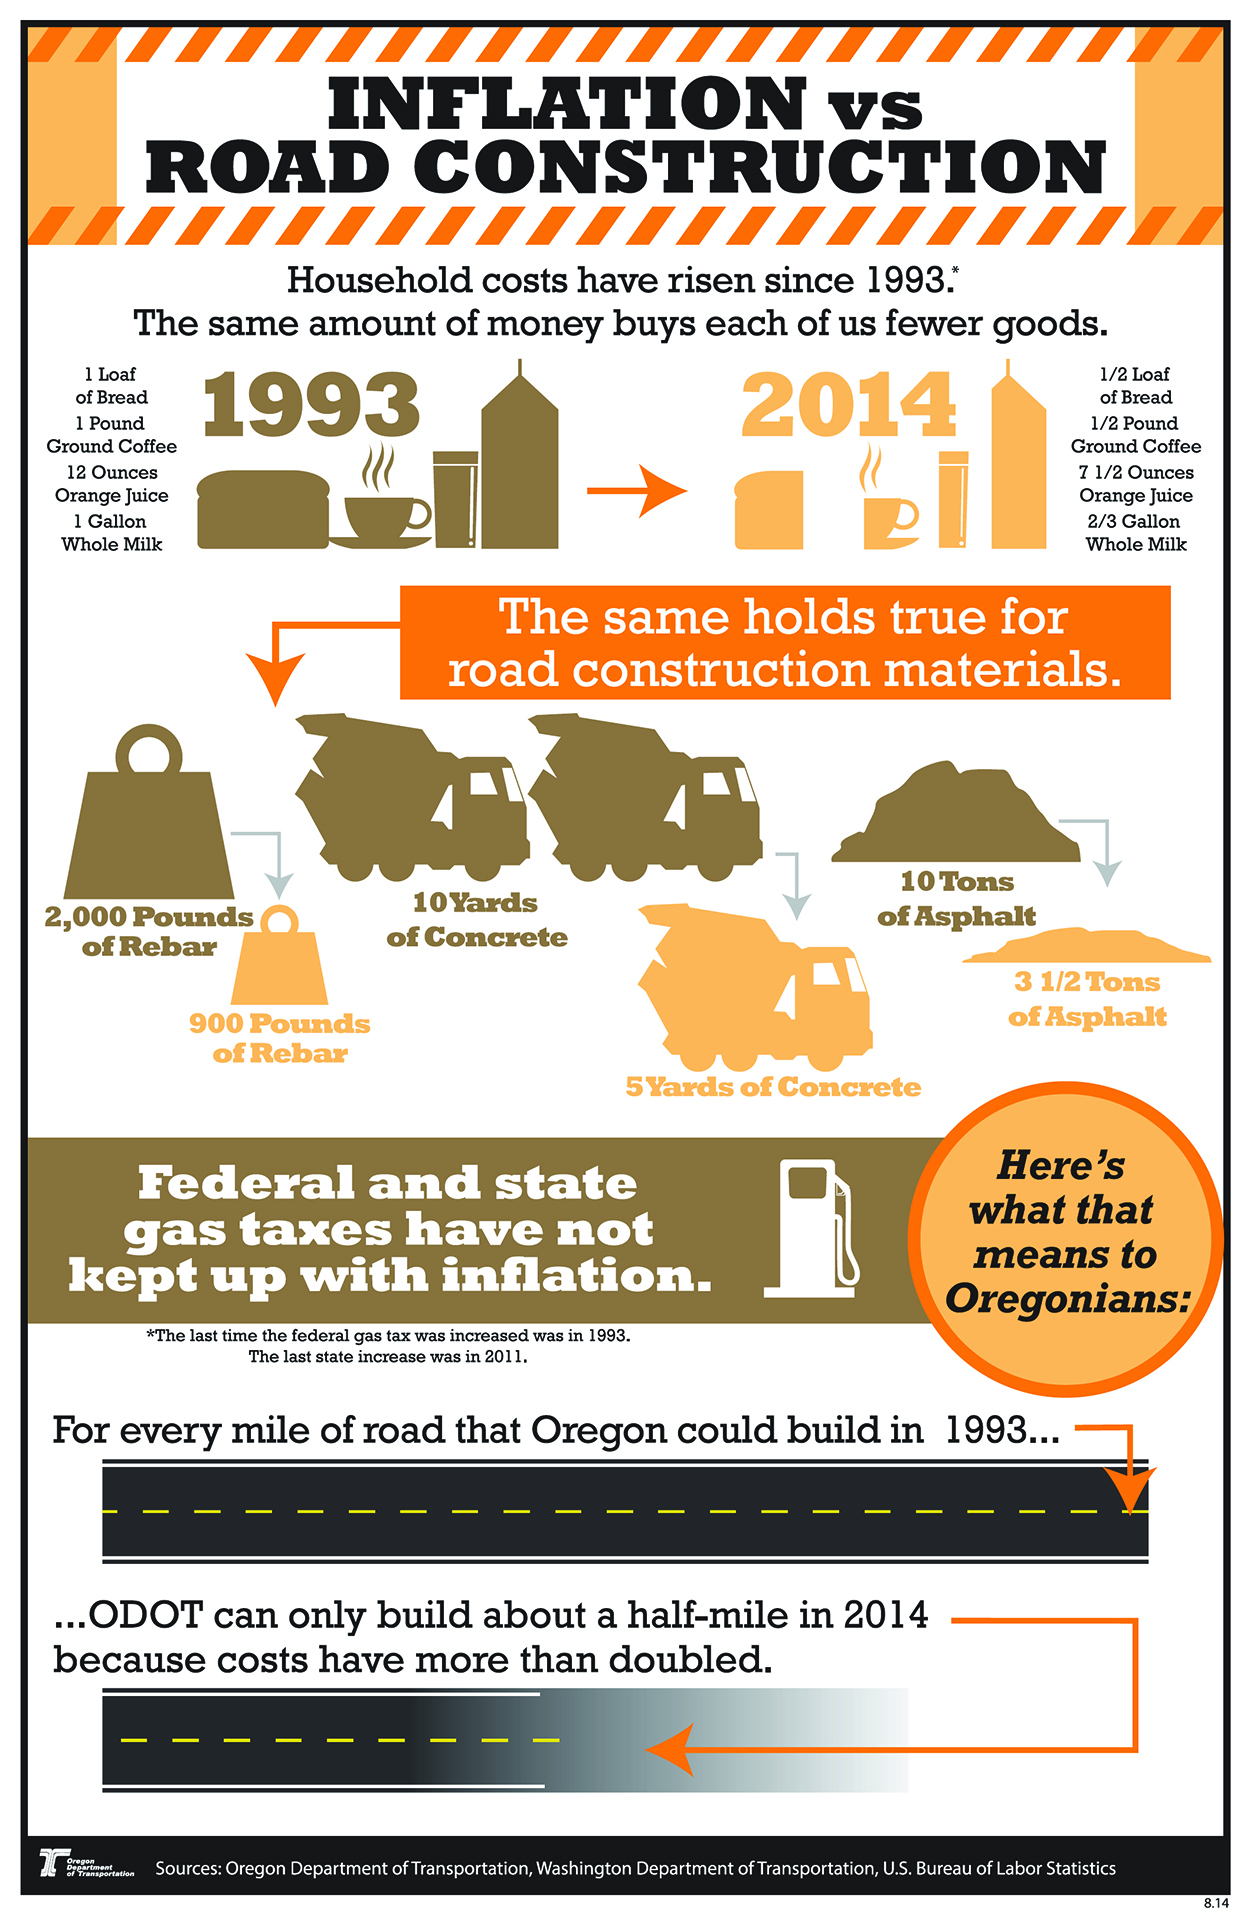 Click here: Inflation vs. Road Construction